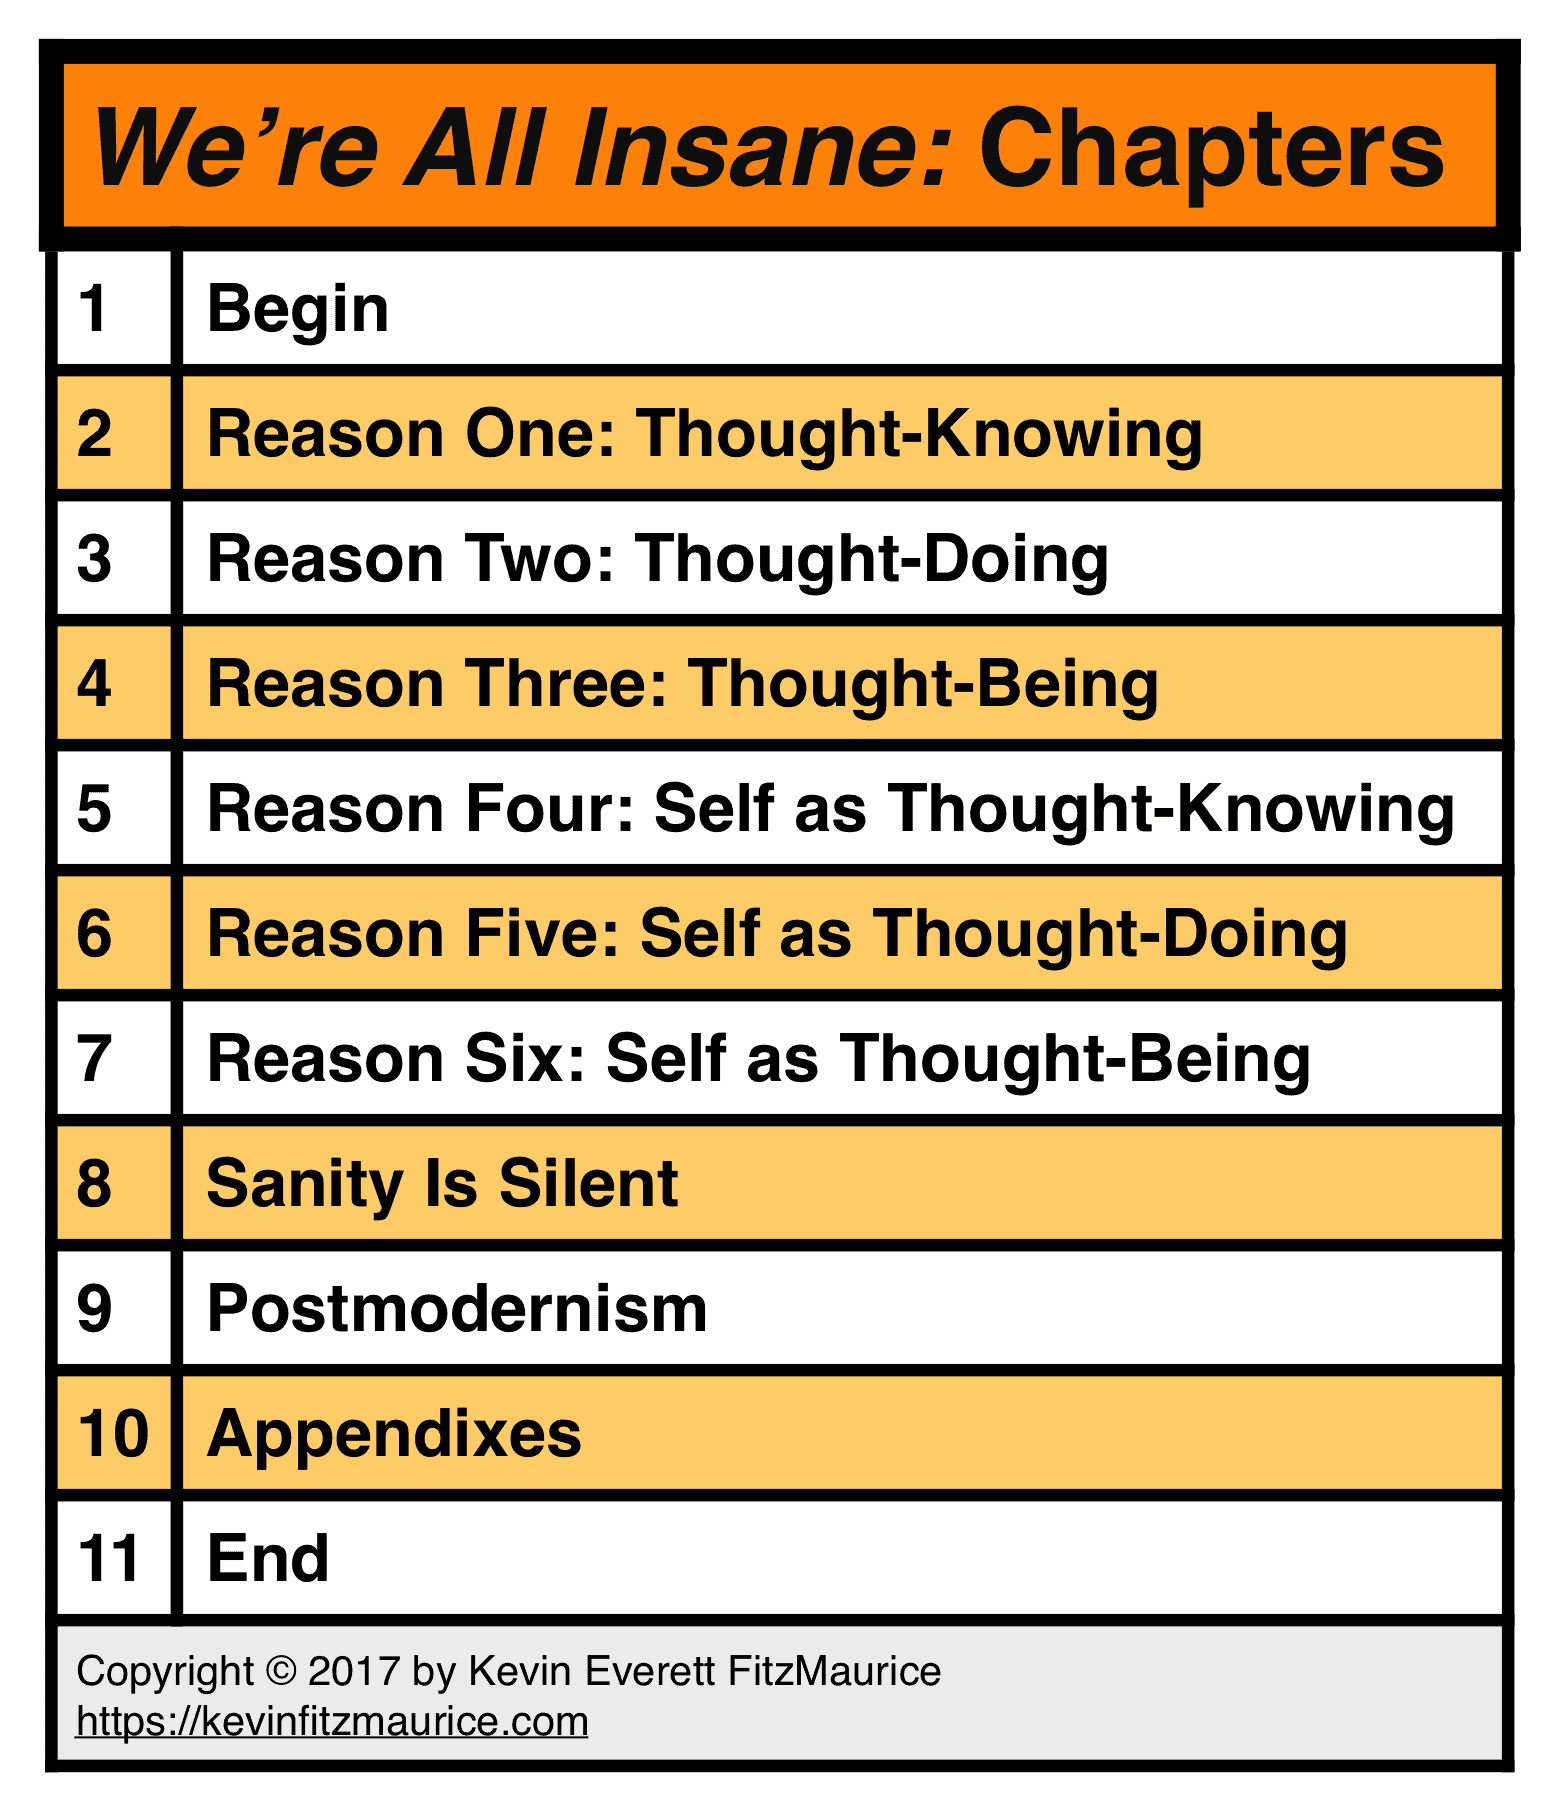 We're All Insane List of Chapters